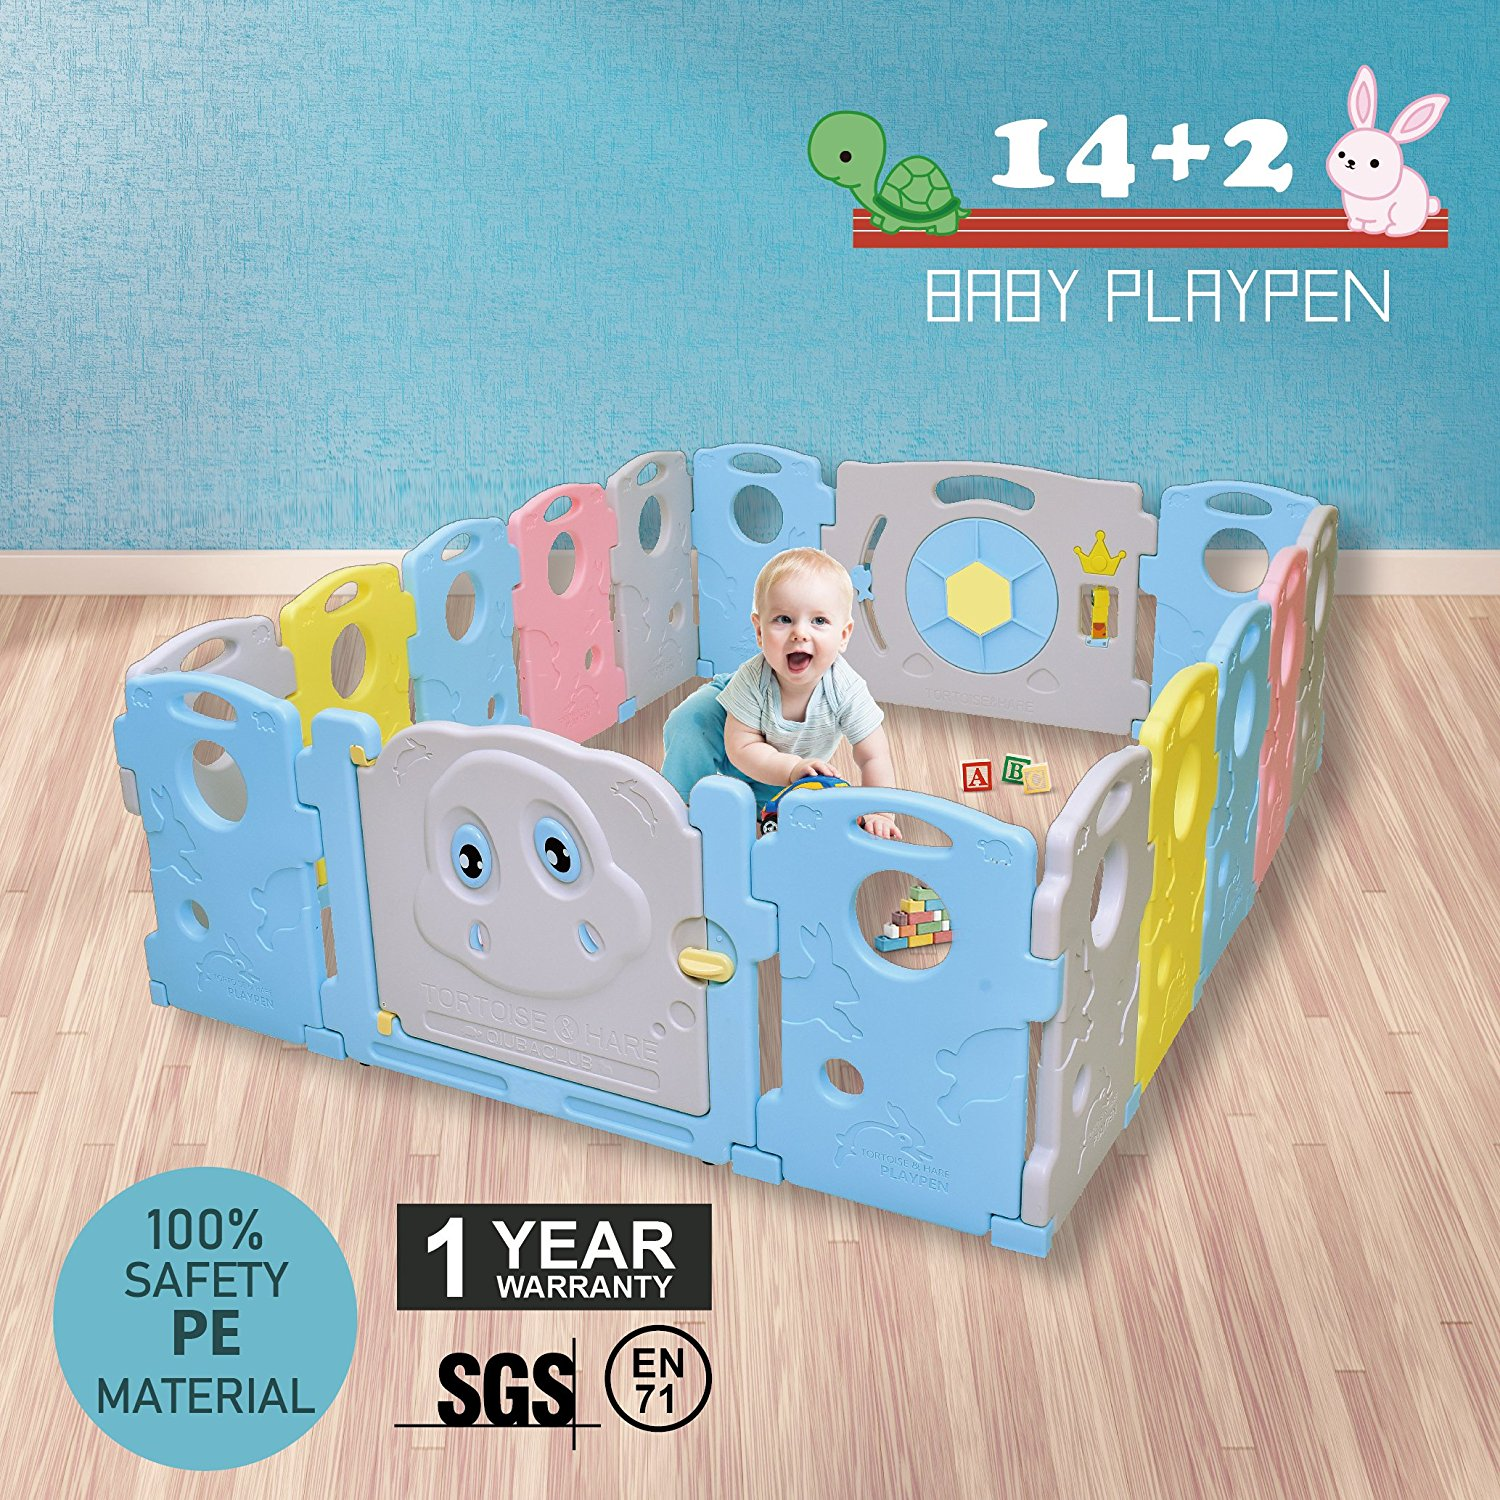 16 Panel Baby Playpen Portable Toddler Safety Folding Play Yard Indoor Outdoor